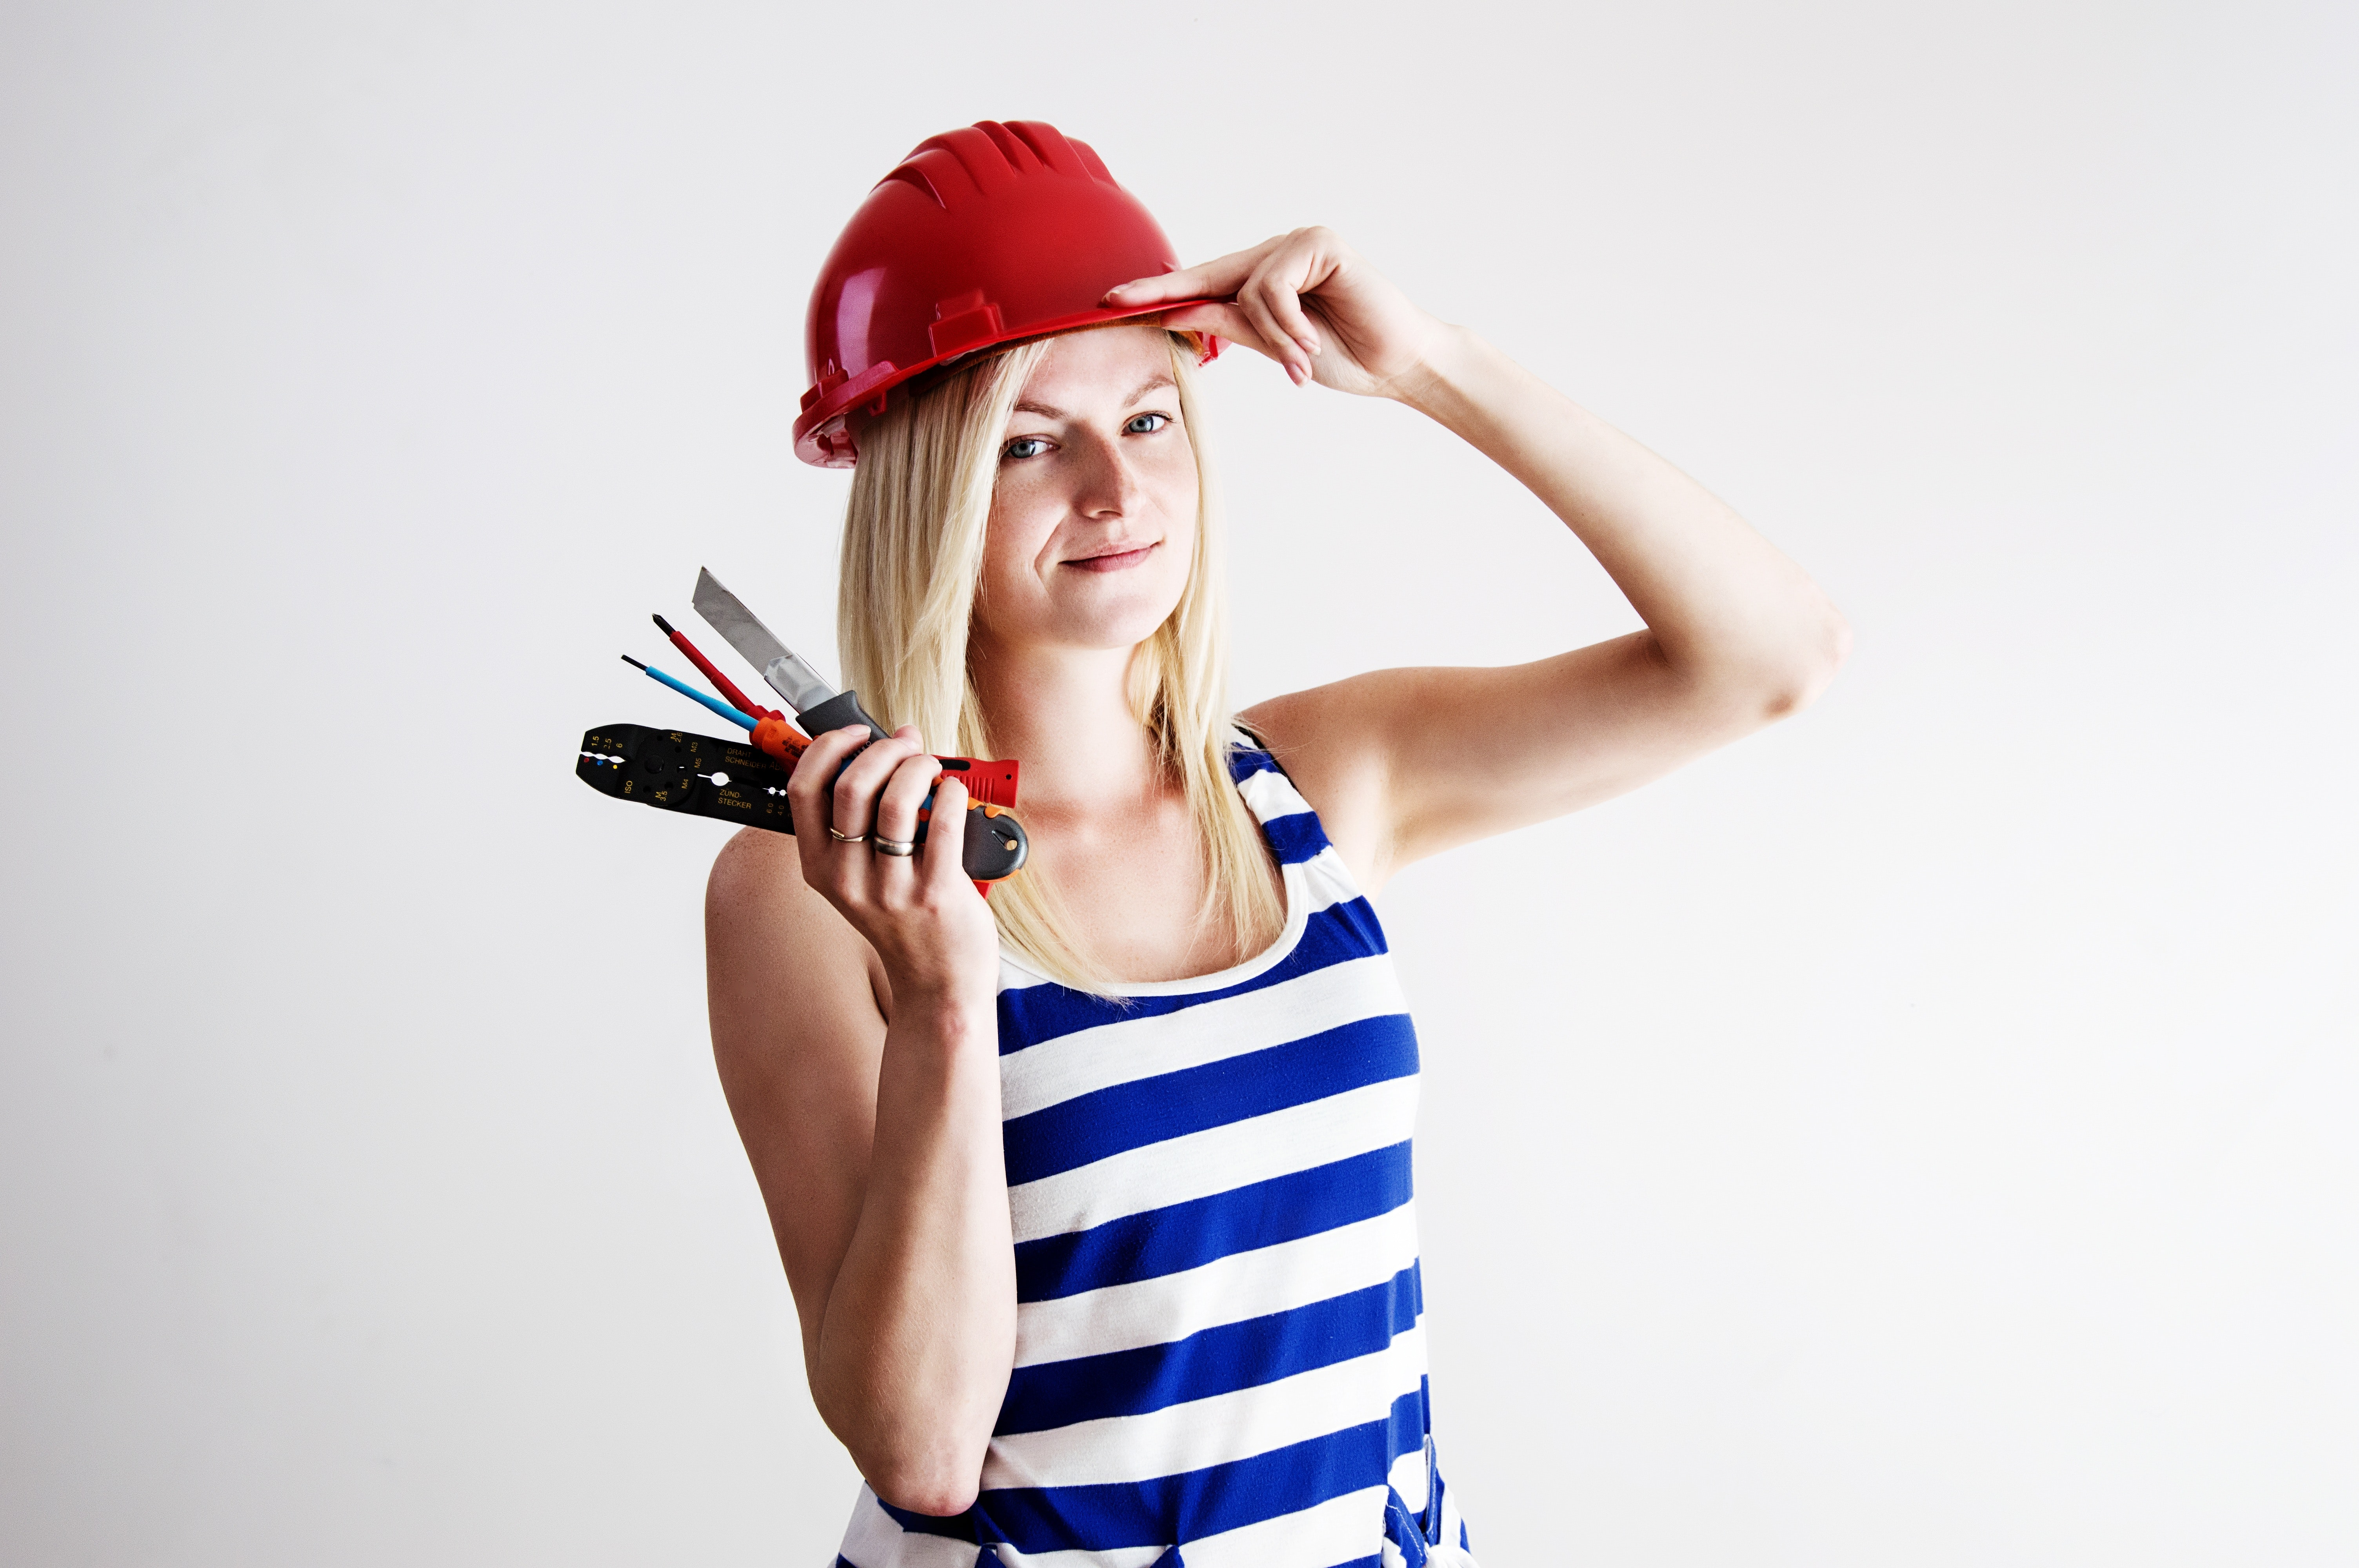 Woman in blue and white tank top wearing red hard hat photo